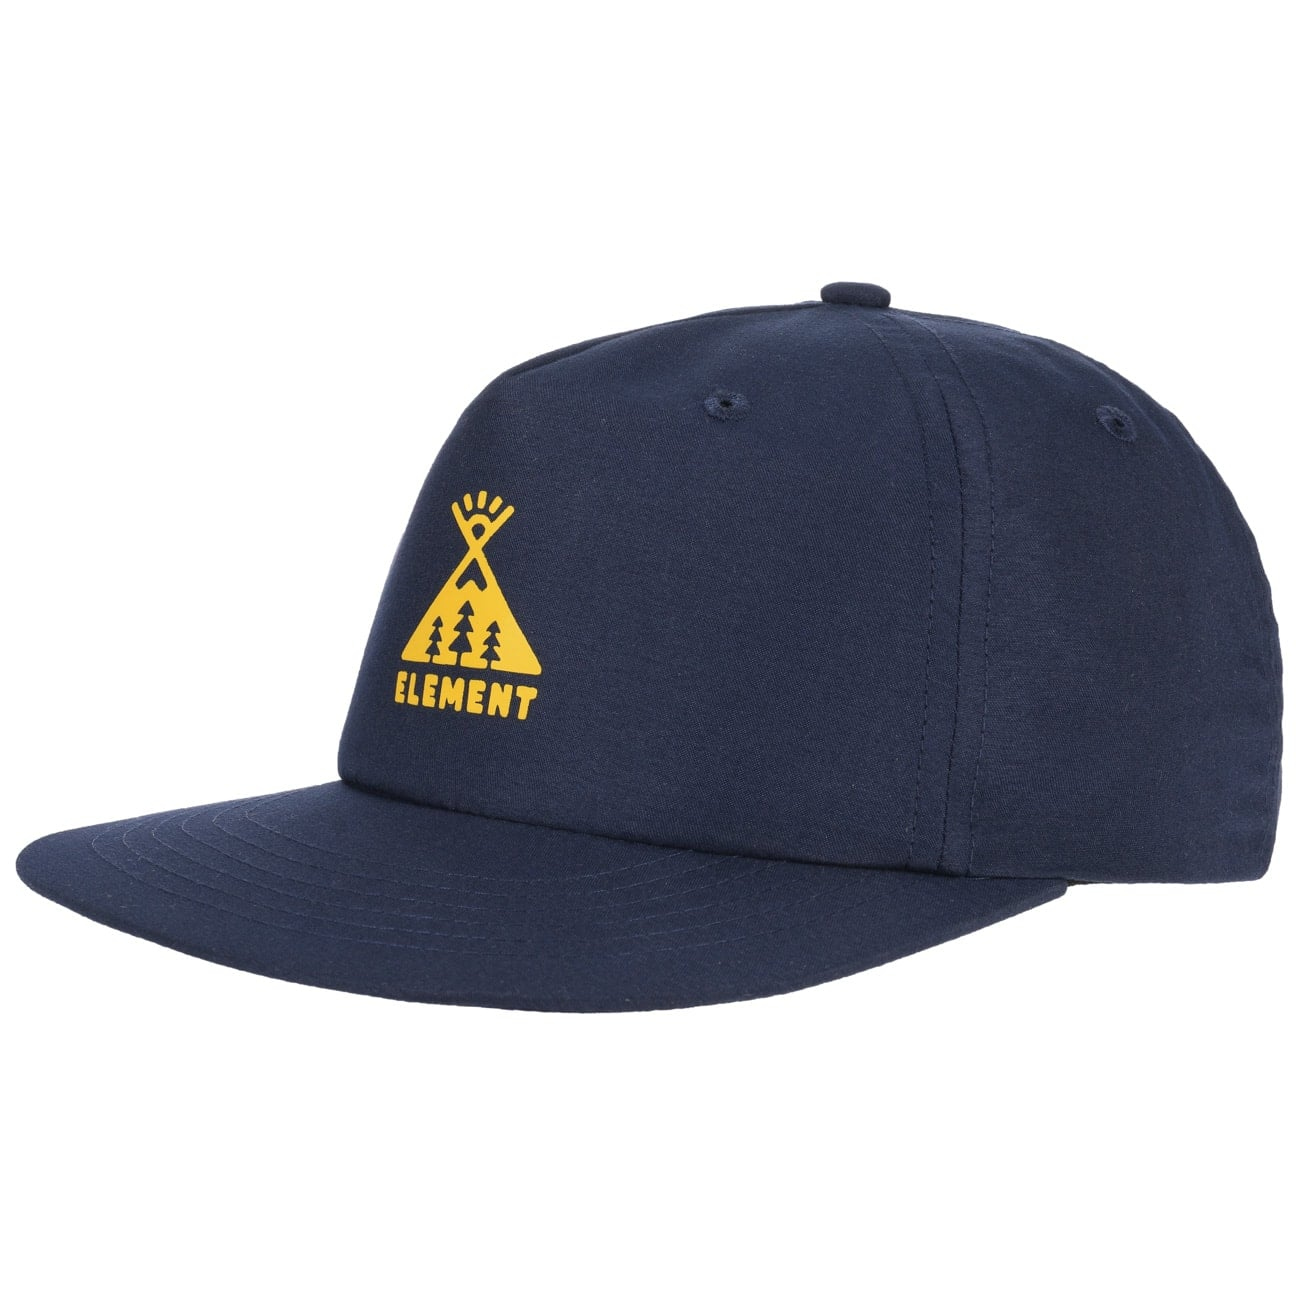 Gorra Form Strapback by element  gorra de baseball